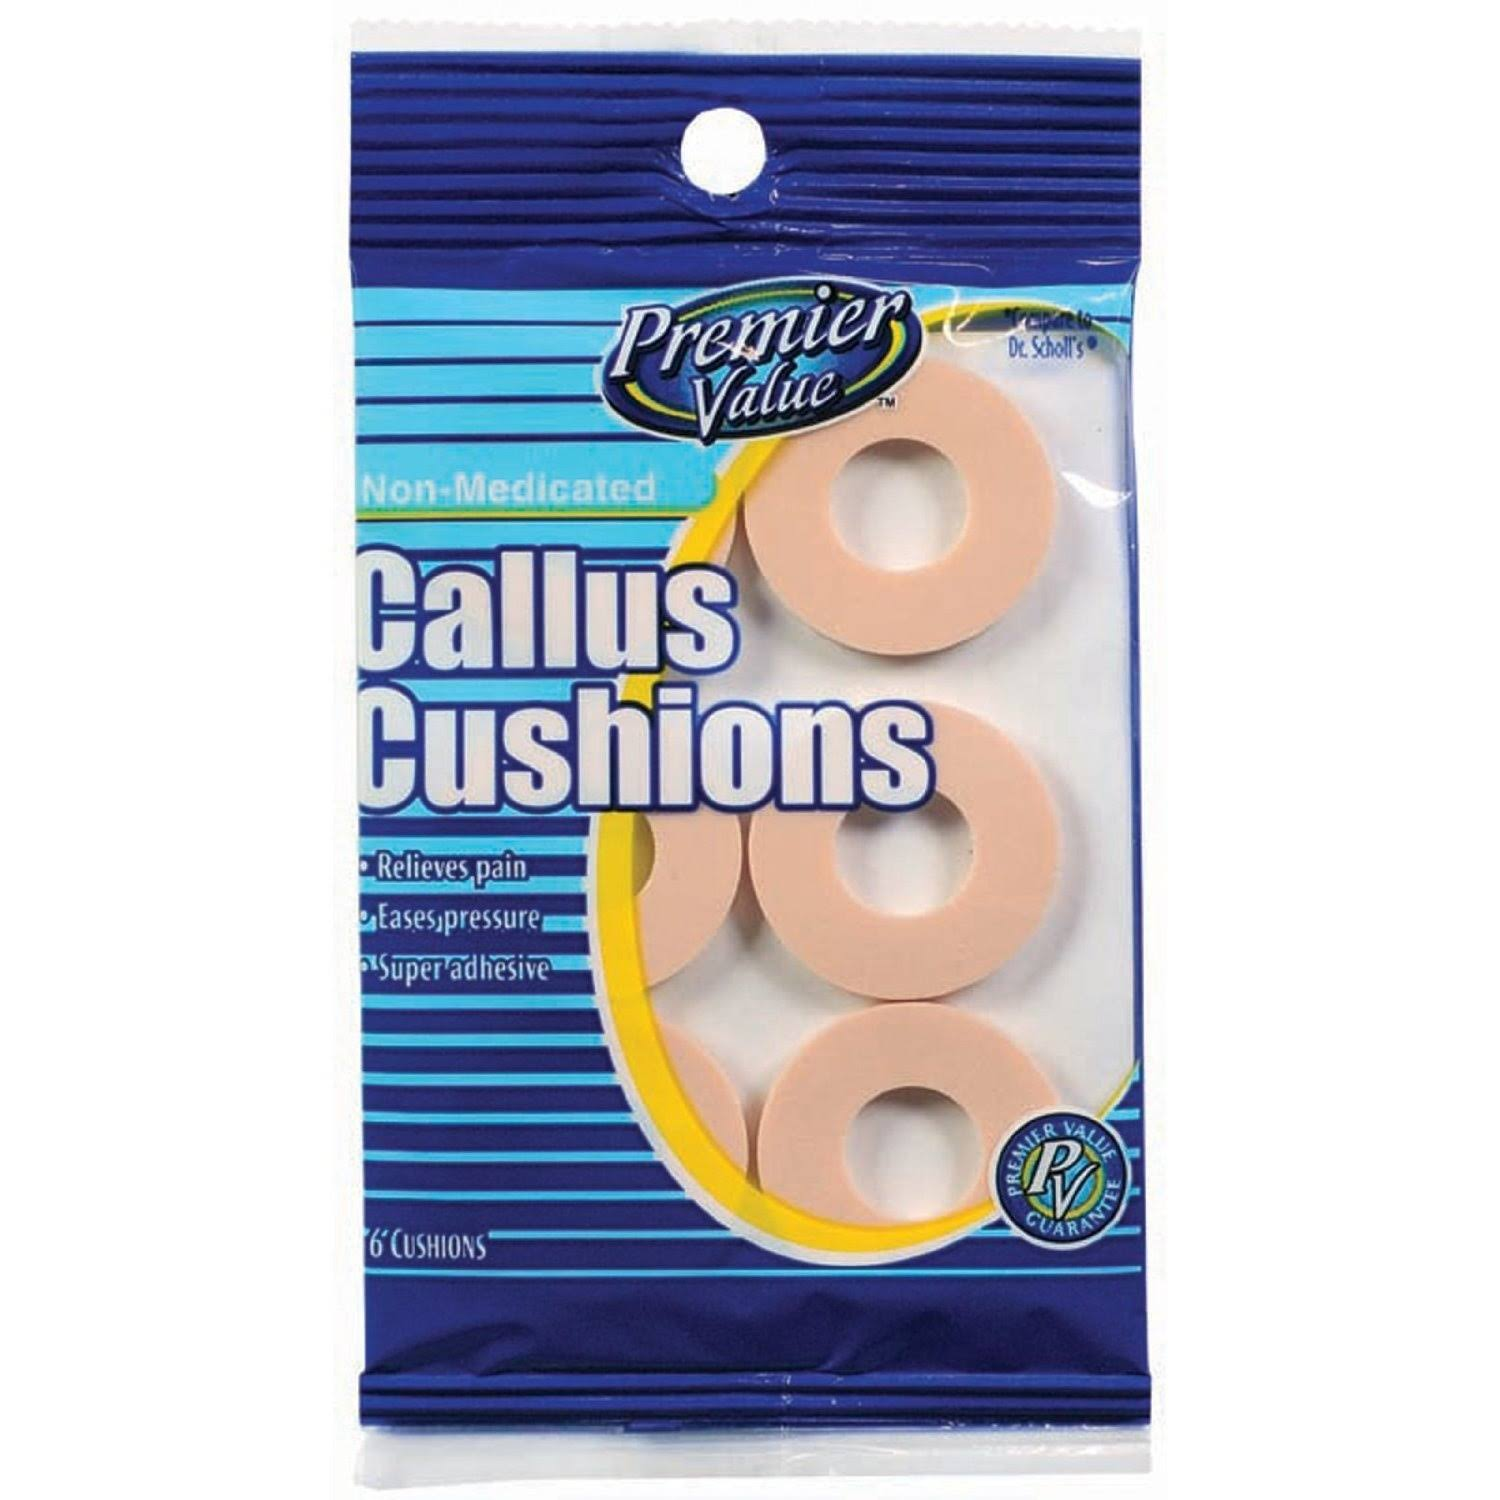 Premier Value Callus Cushions - 6ct